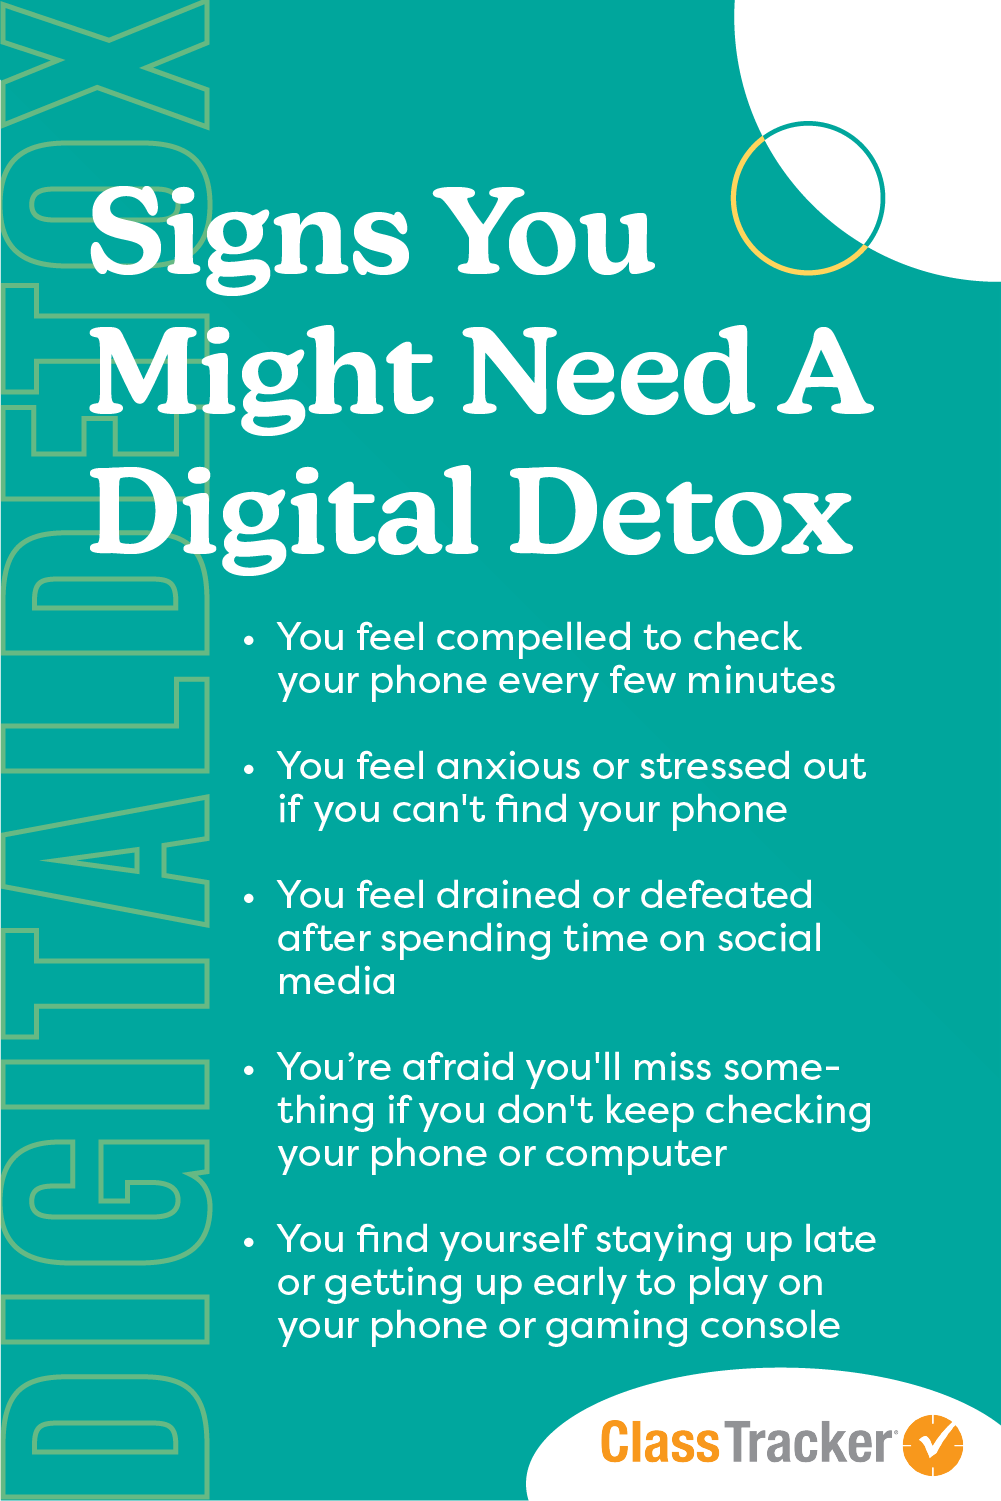 Signs You Might Need A Digital Detox